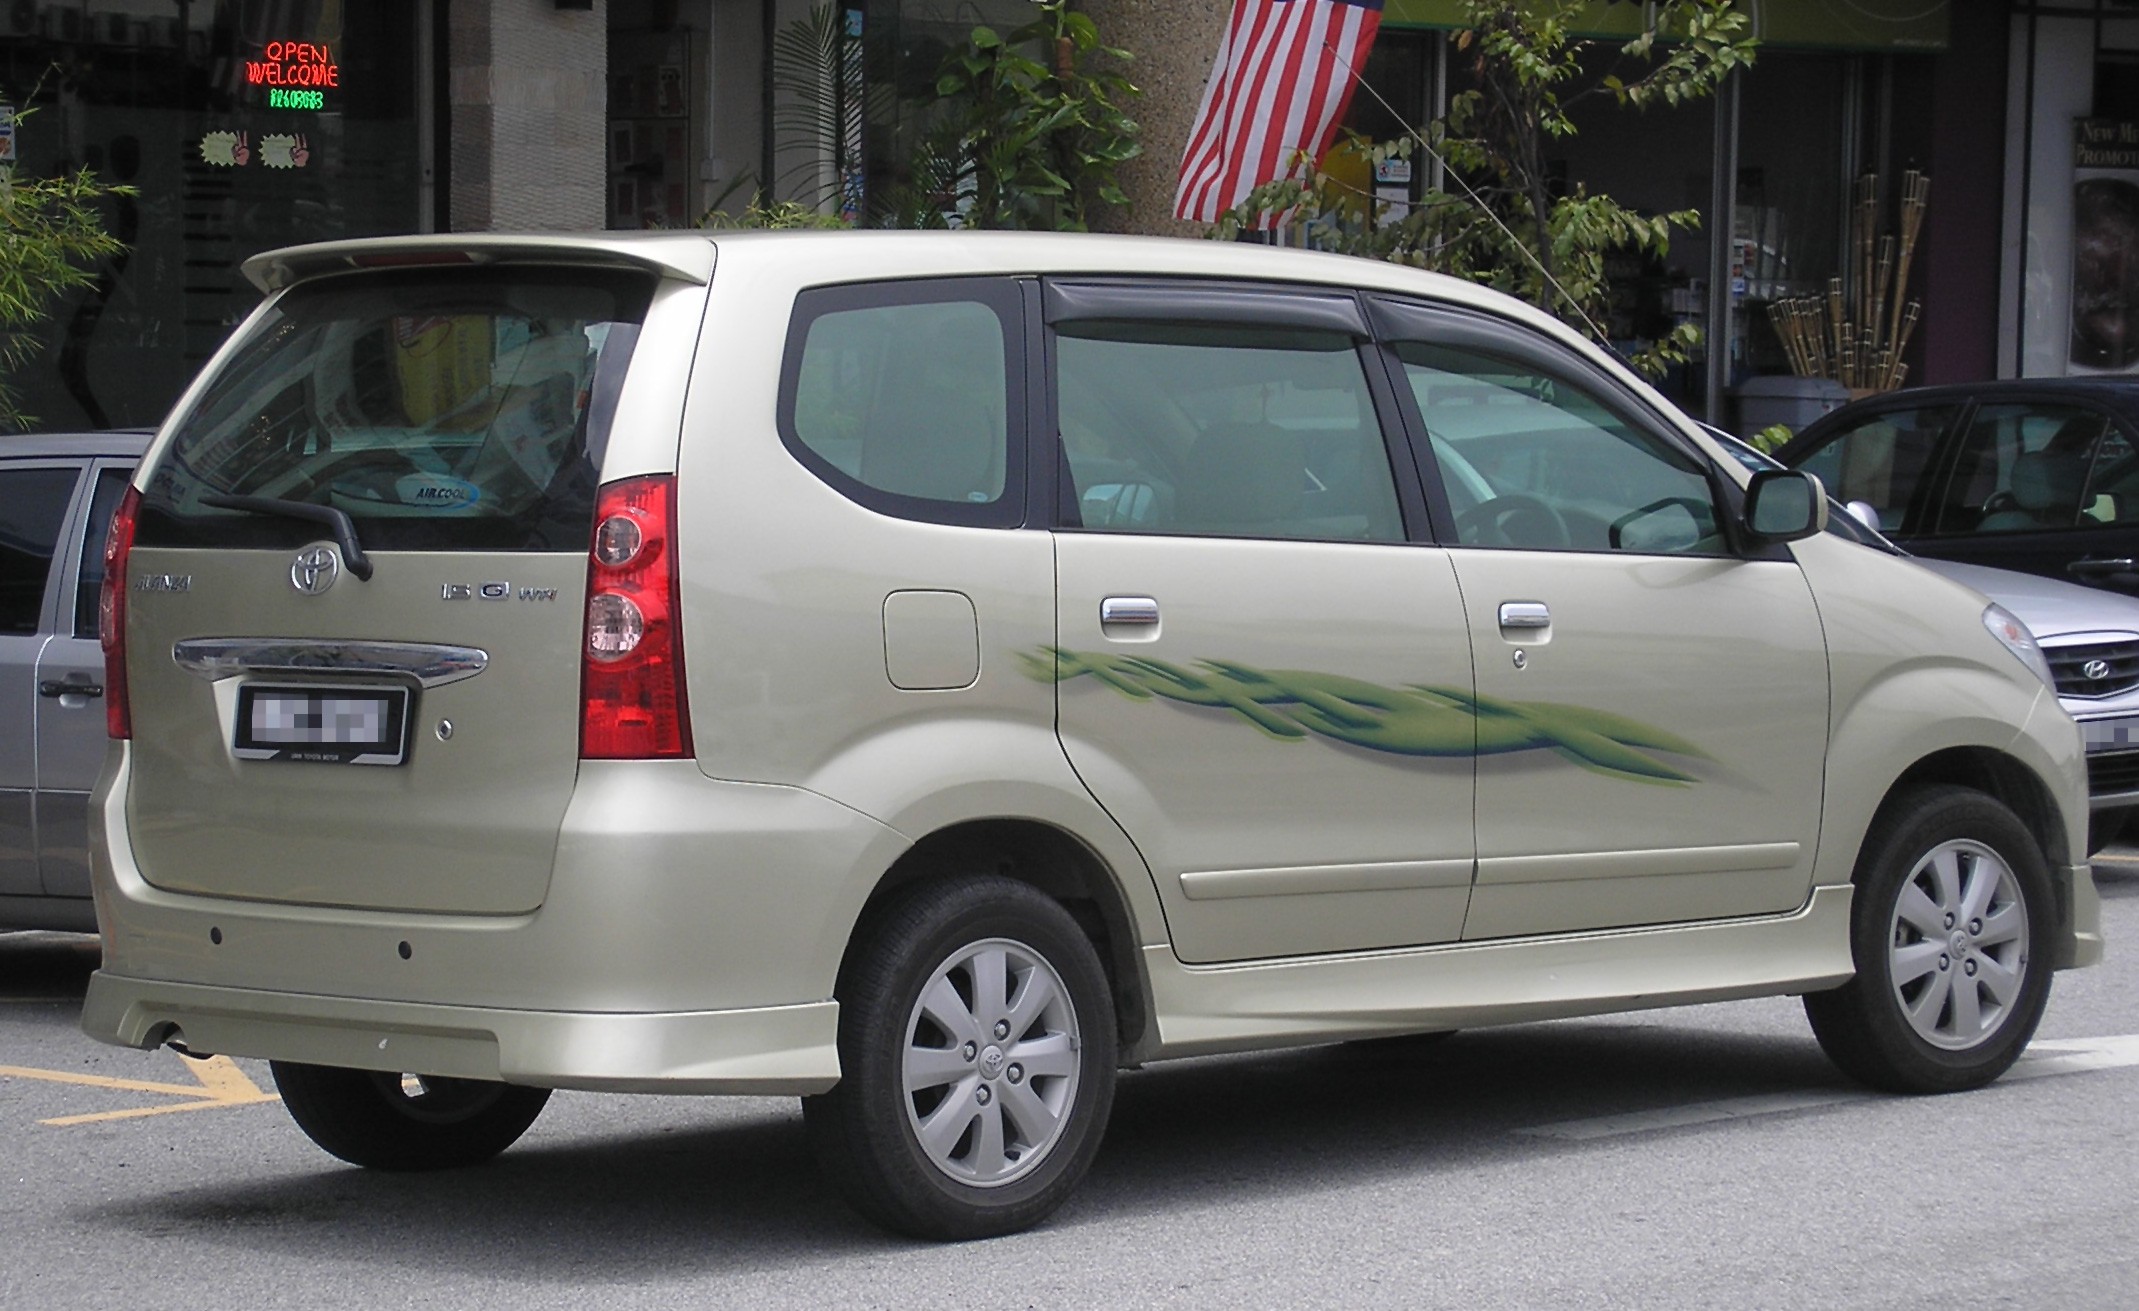 harga mobil bekas grand new avanza 2015 alarm toyota 2010 2012 prices in pakistan pictures and reviews exterior rear side view